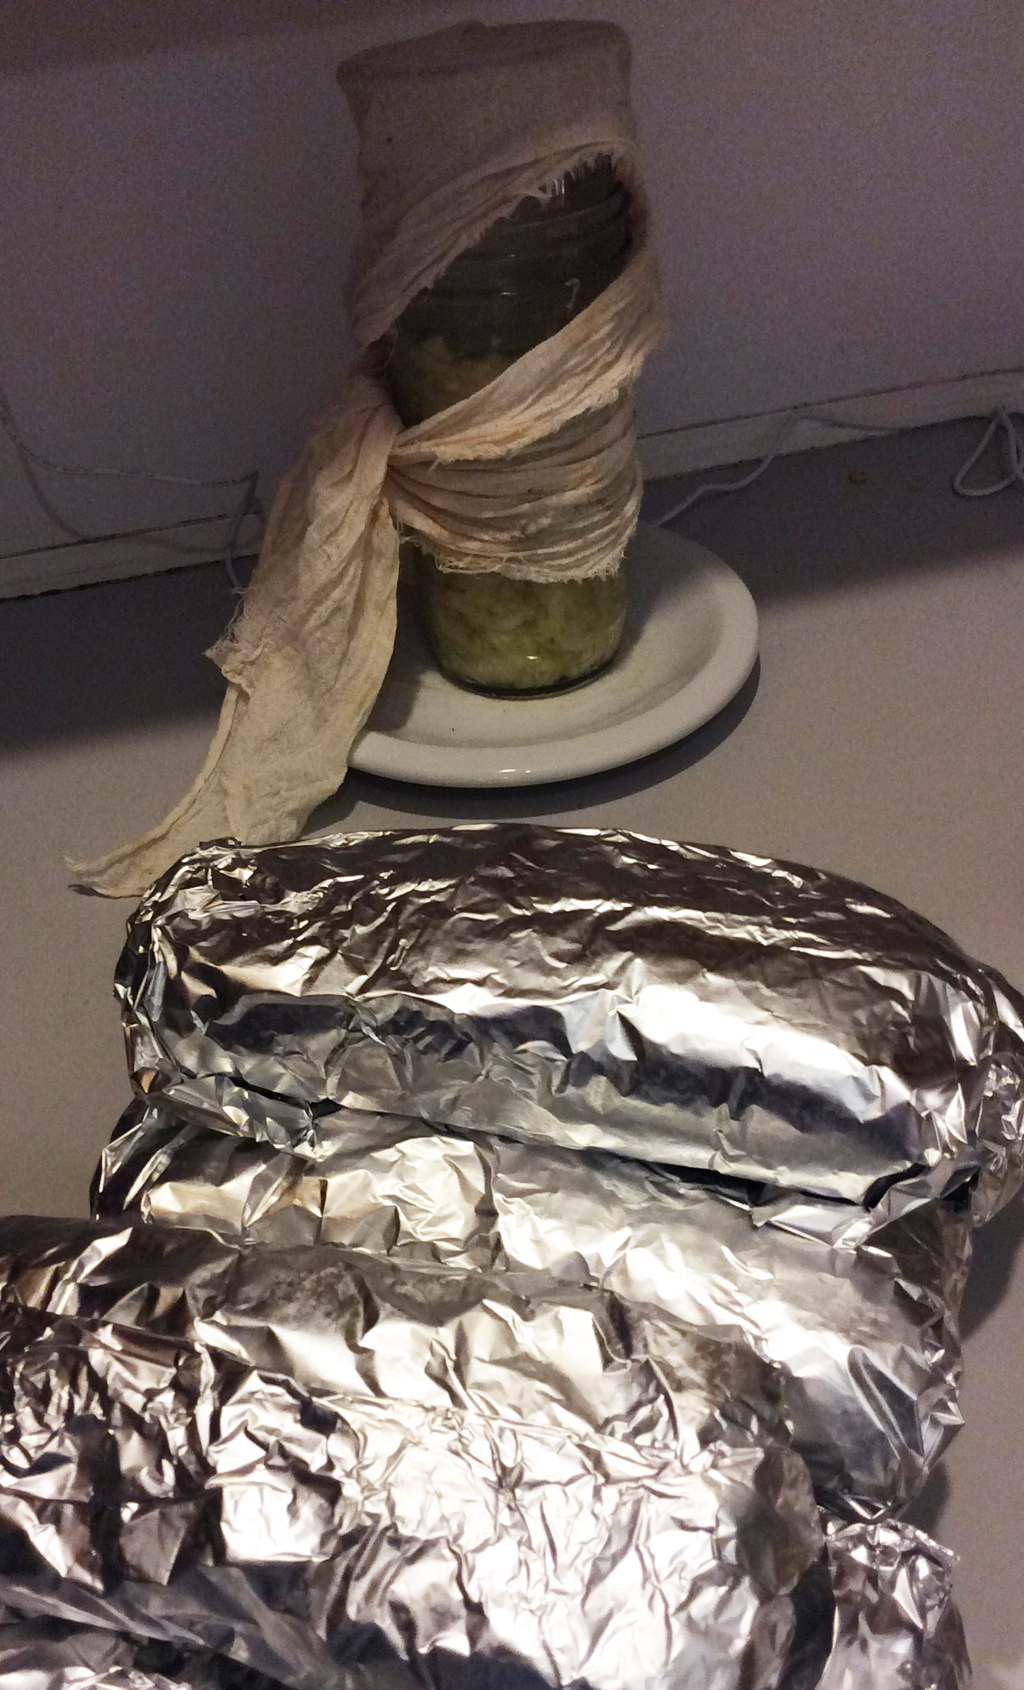 Gym-bound stack o'burritos with a tiny jar of mummy-like sauerkraut fermenting in the background.